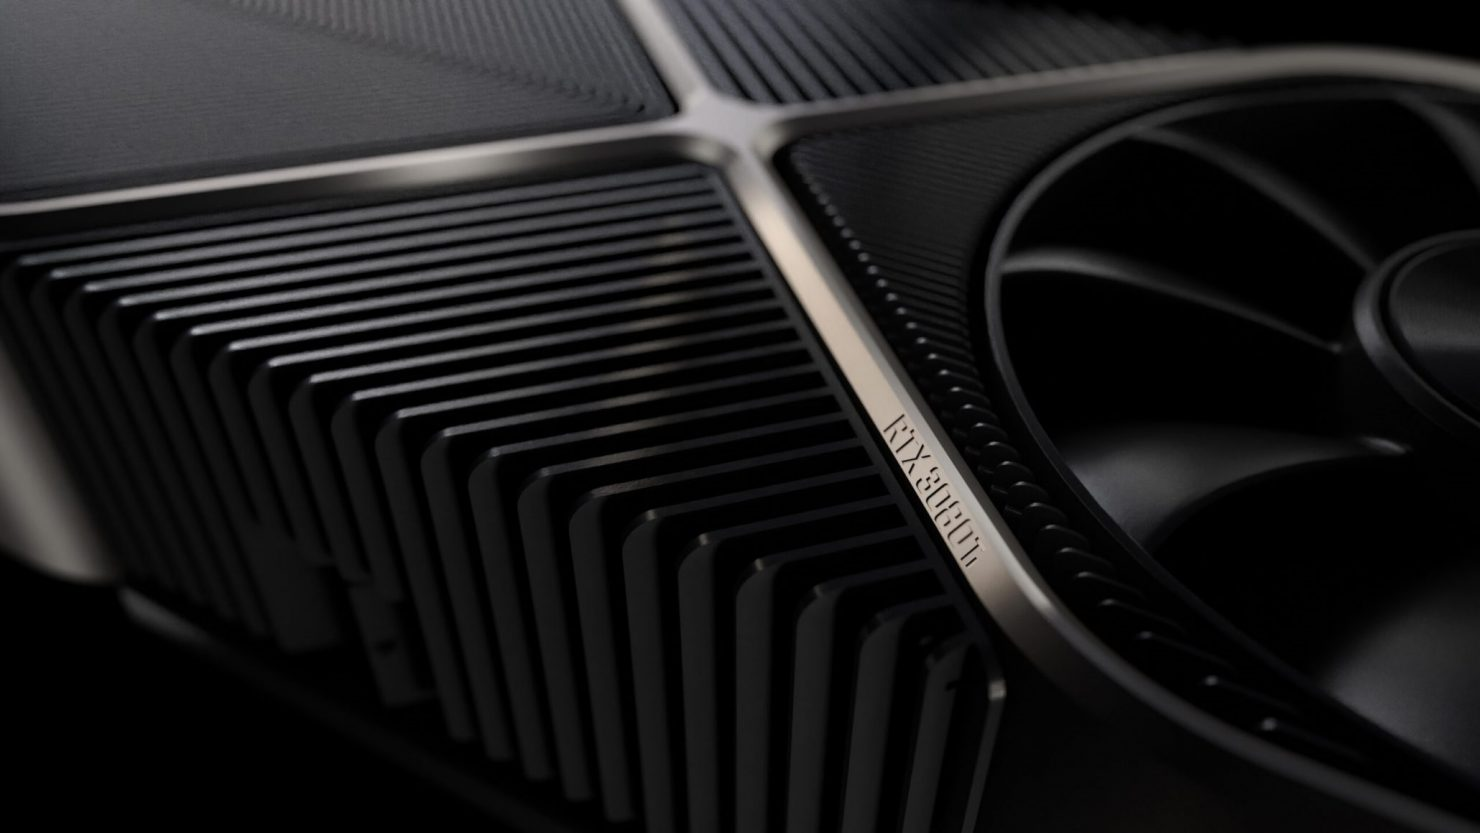 retailer-already-taking-pre-orders-for-geforce-rtx-3080-ti-at-over-$2700-us,-rtx-3070-ti-for-over-$2000-us